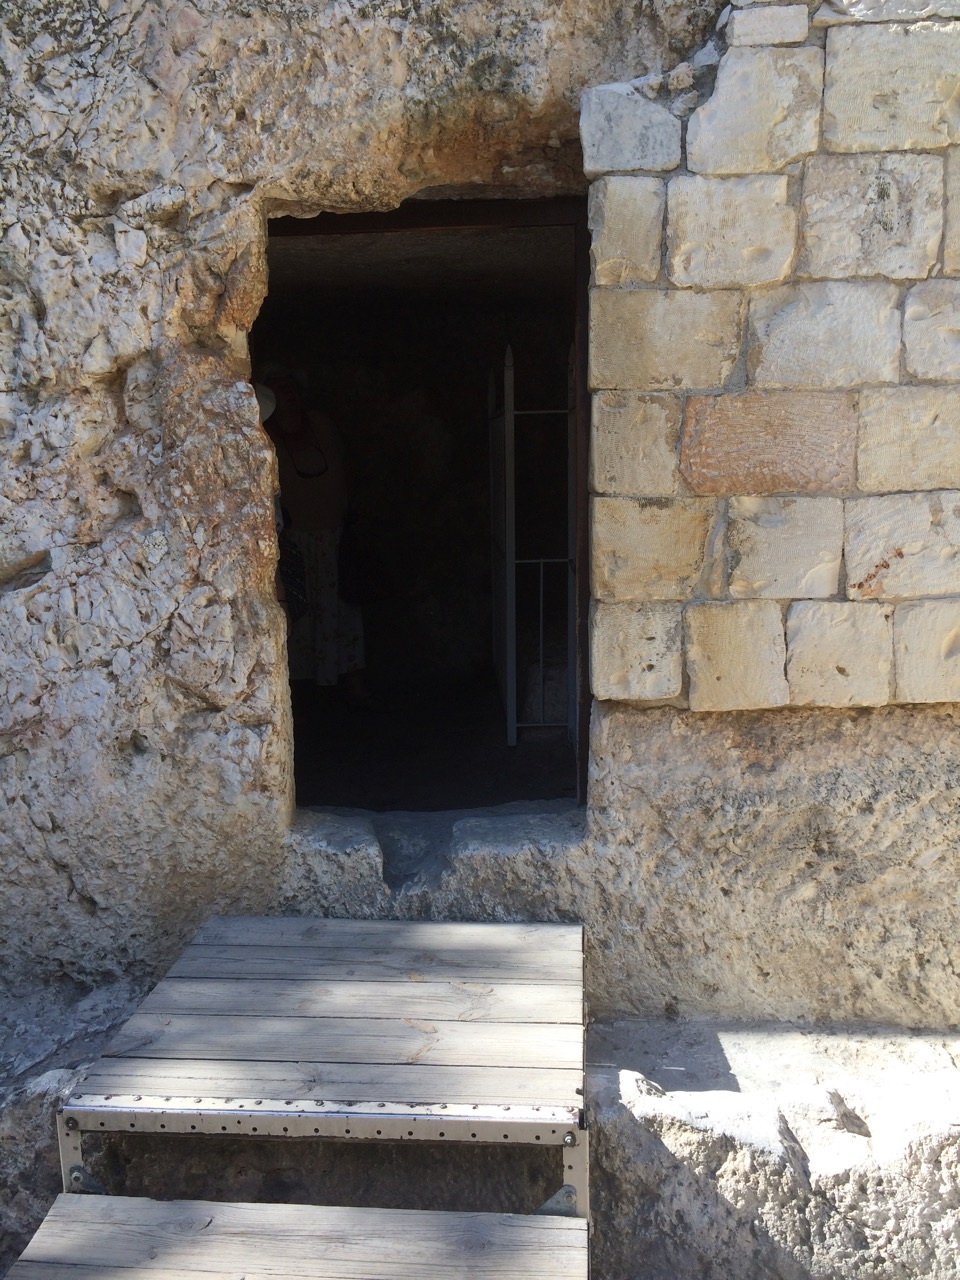 Entrance to the Garden Tomb, Jerusalem